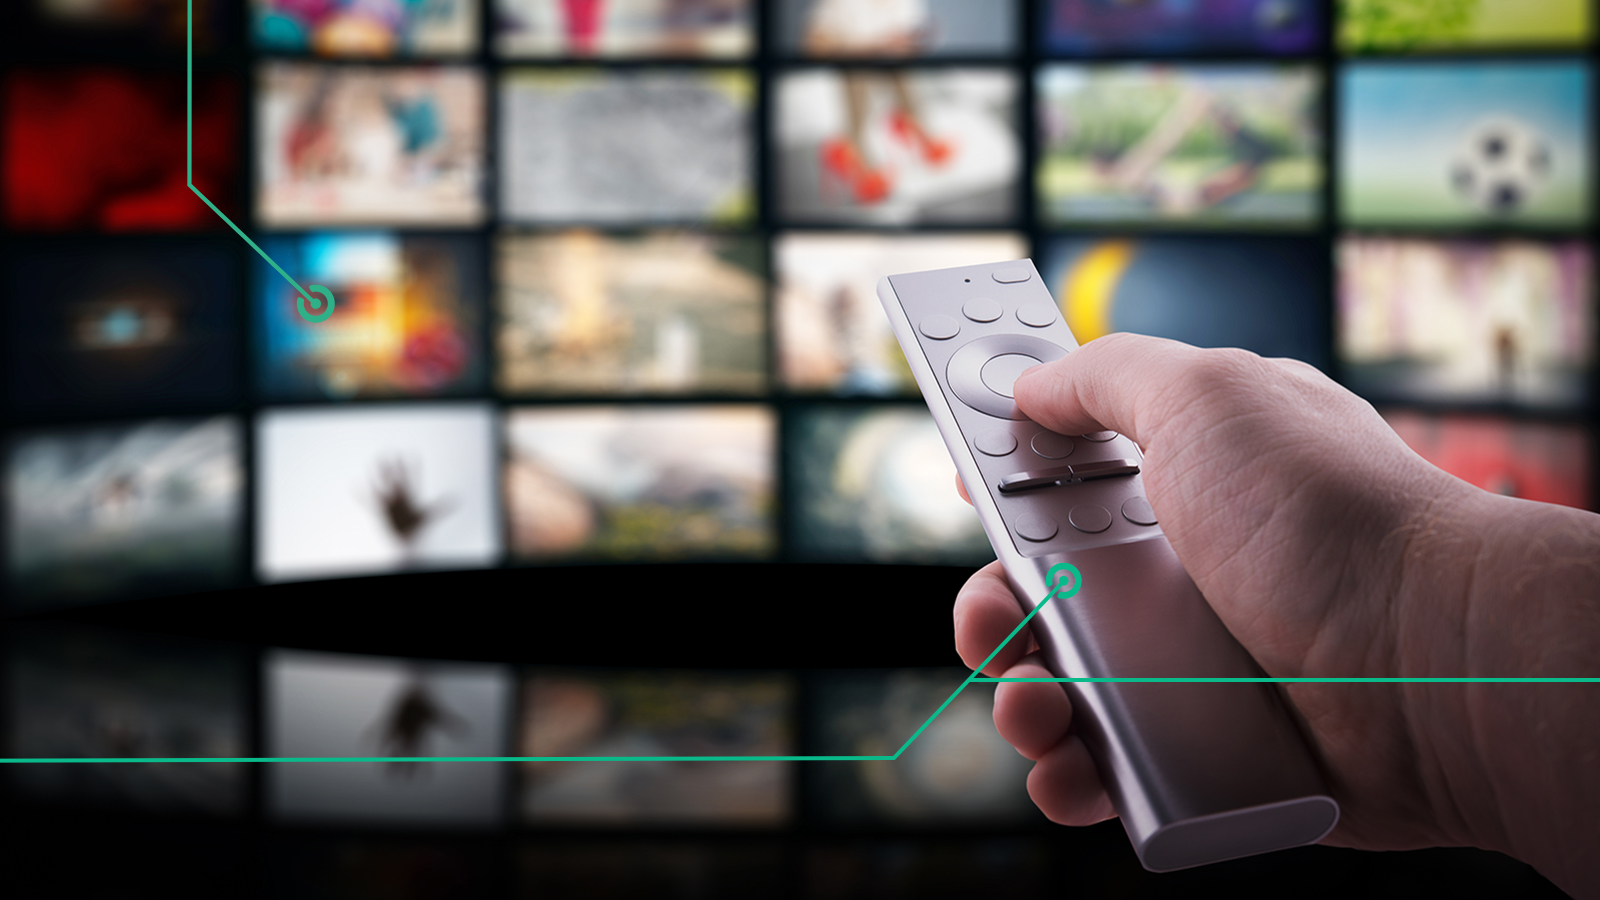 It's time to connect with connected TVs